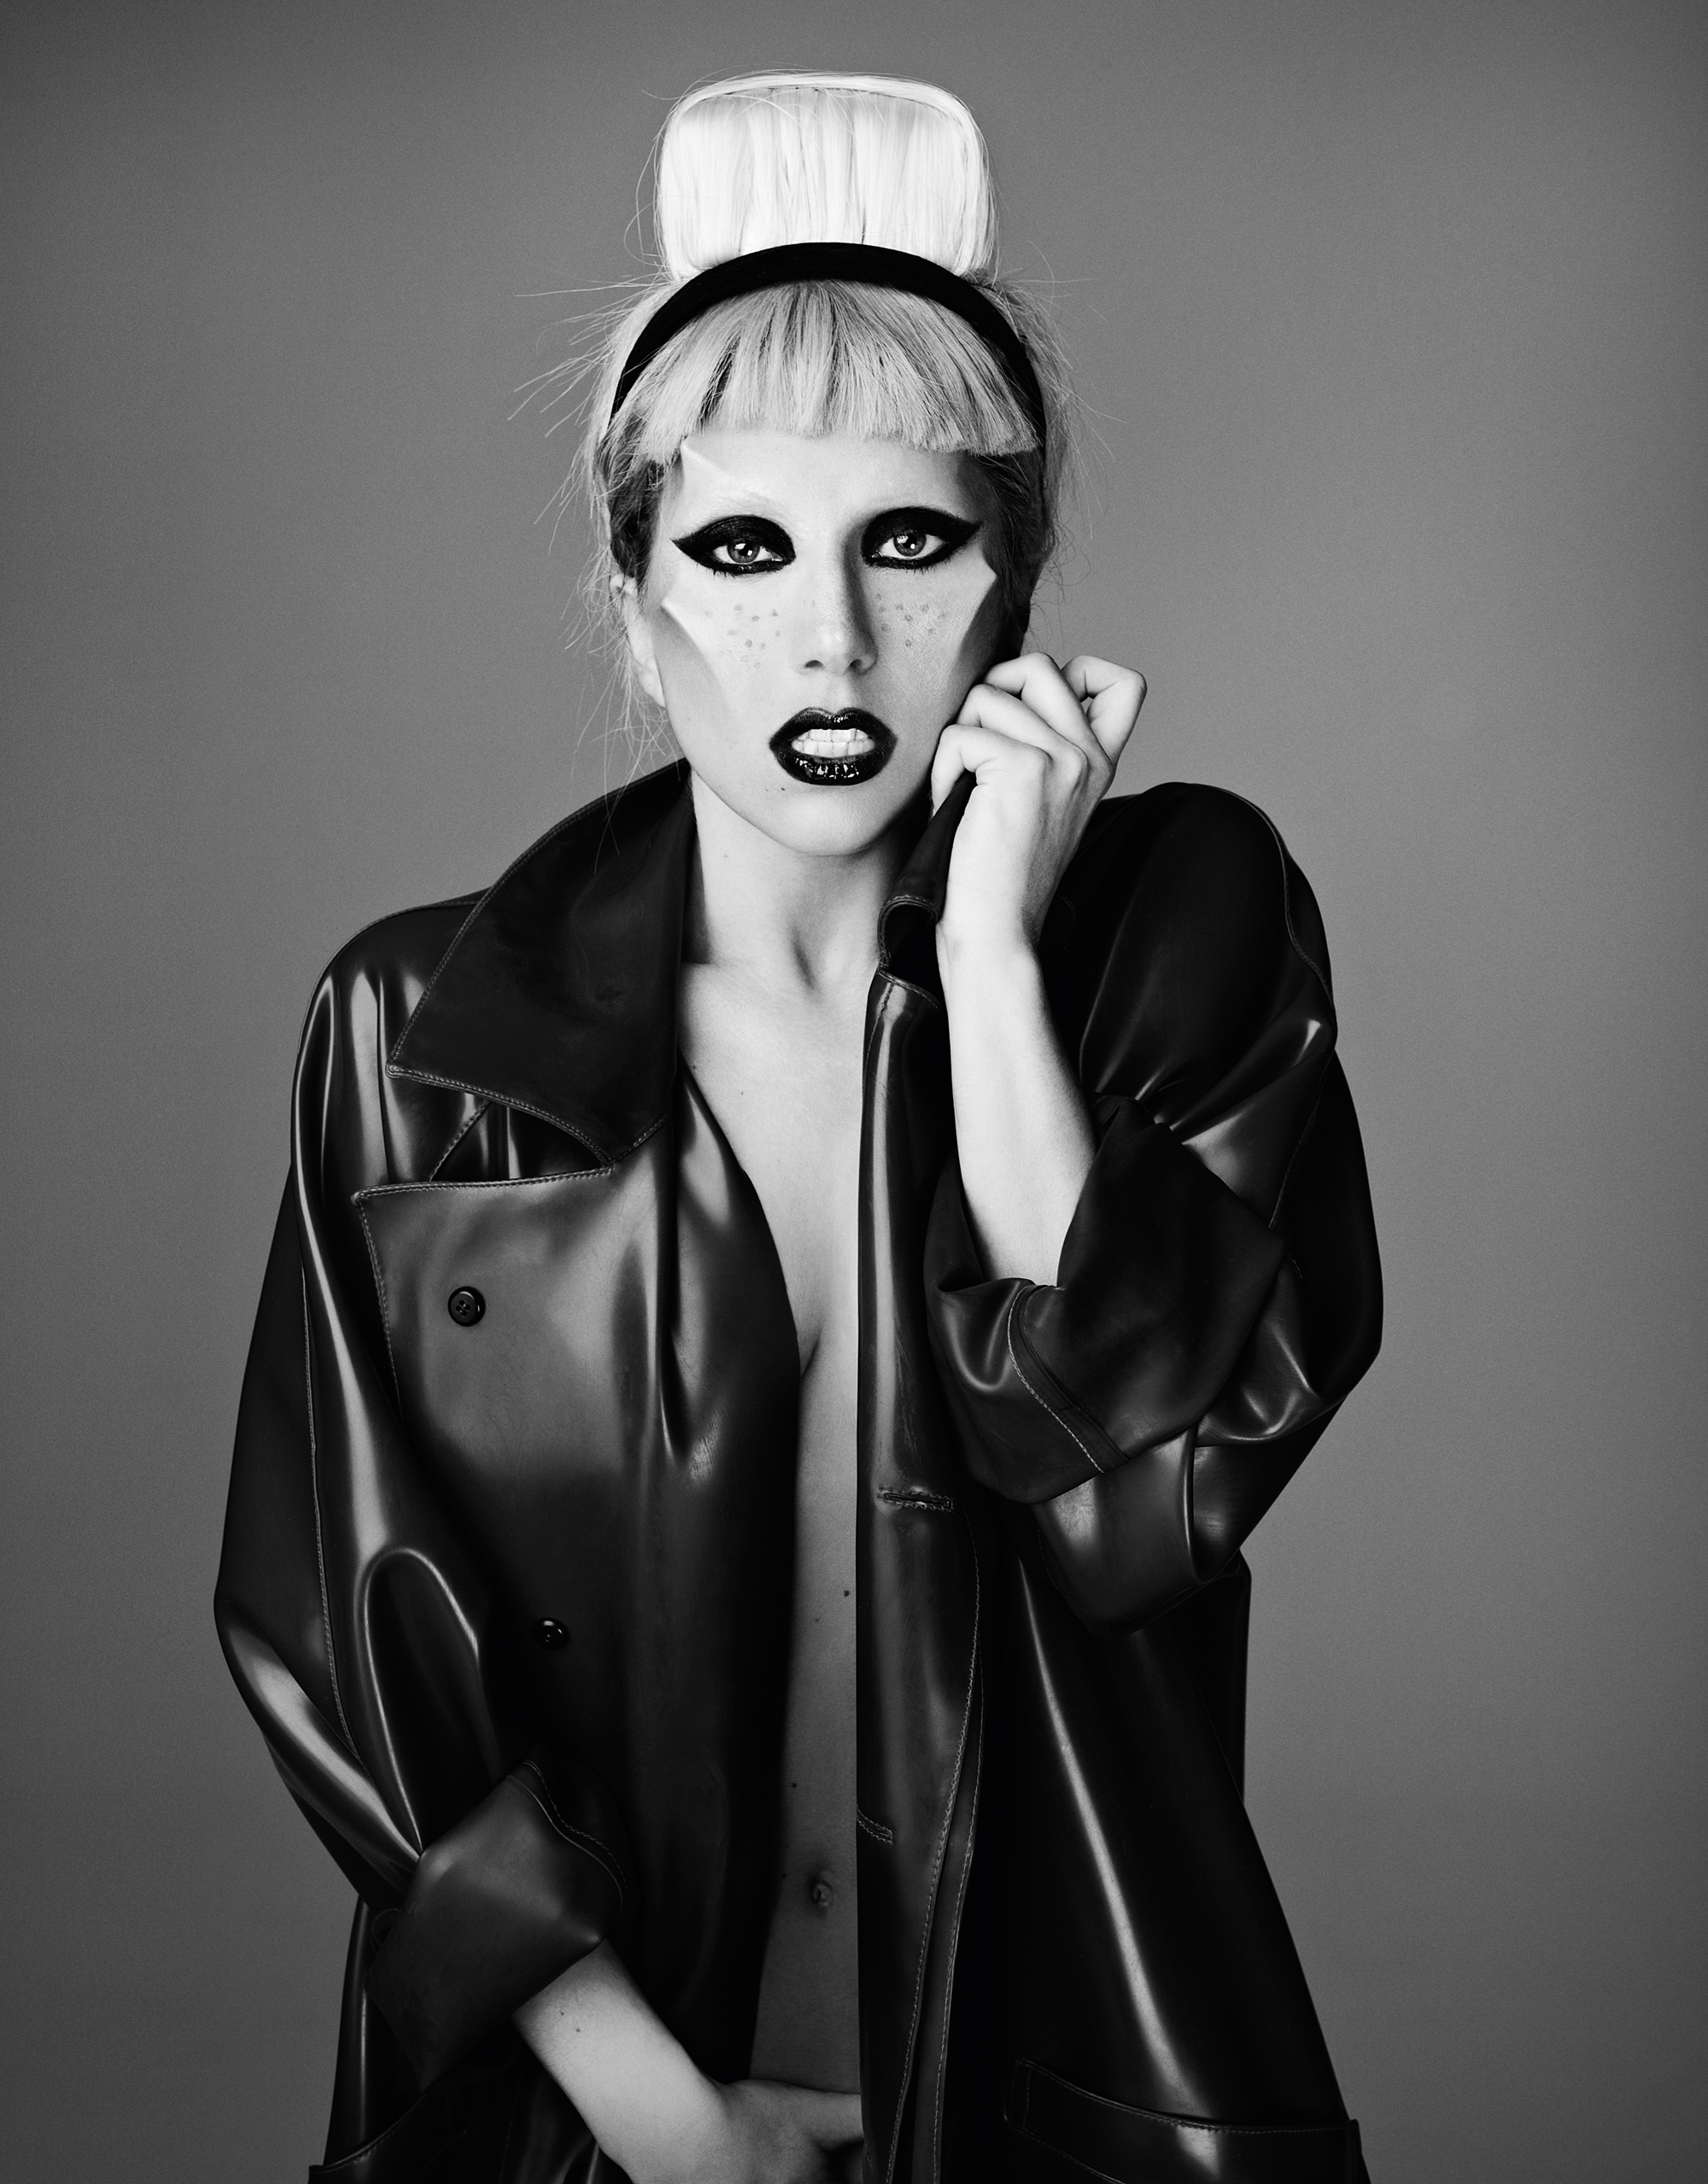 Mariano lady vivanco gaga